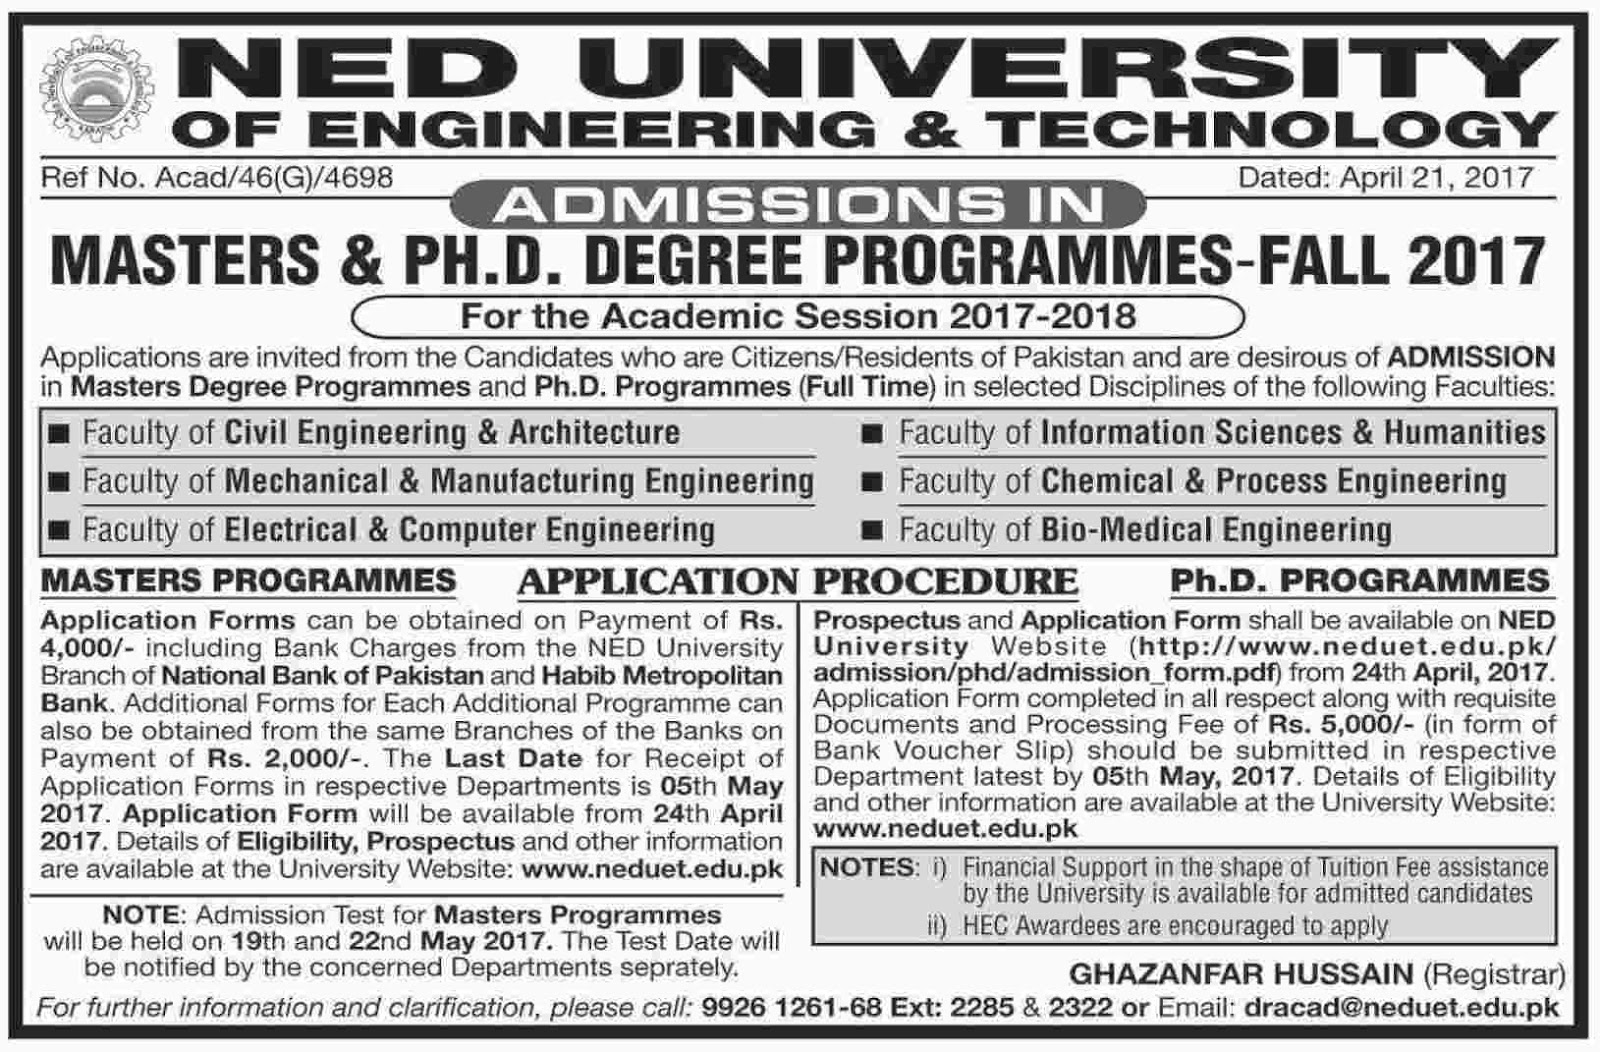 NED University of Engineering and Technology Admissions Fall 2017